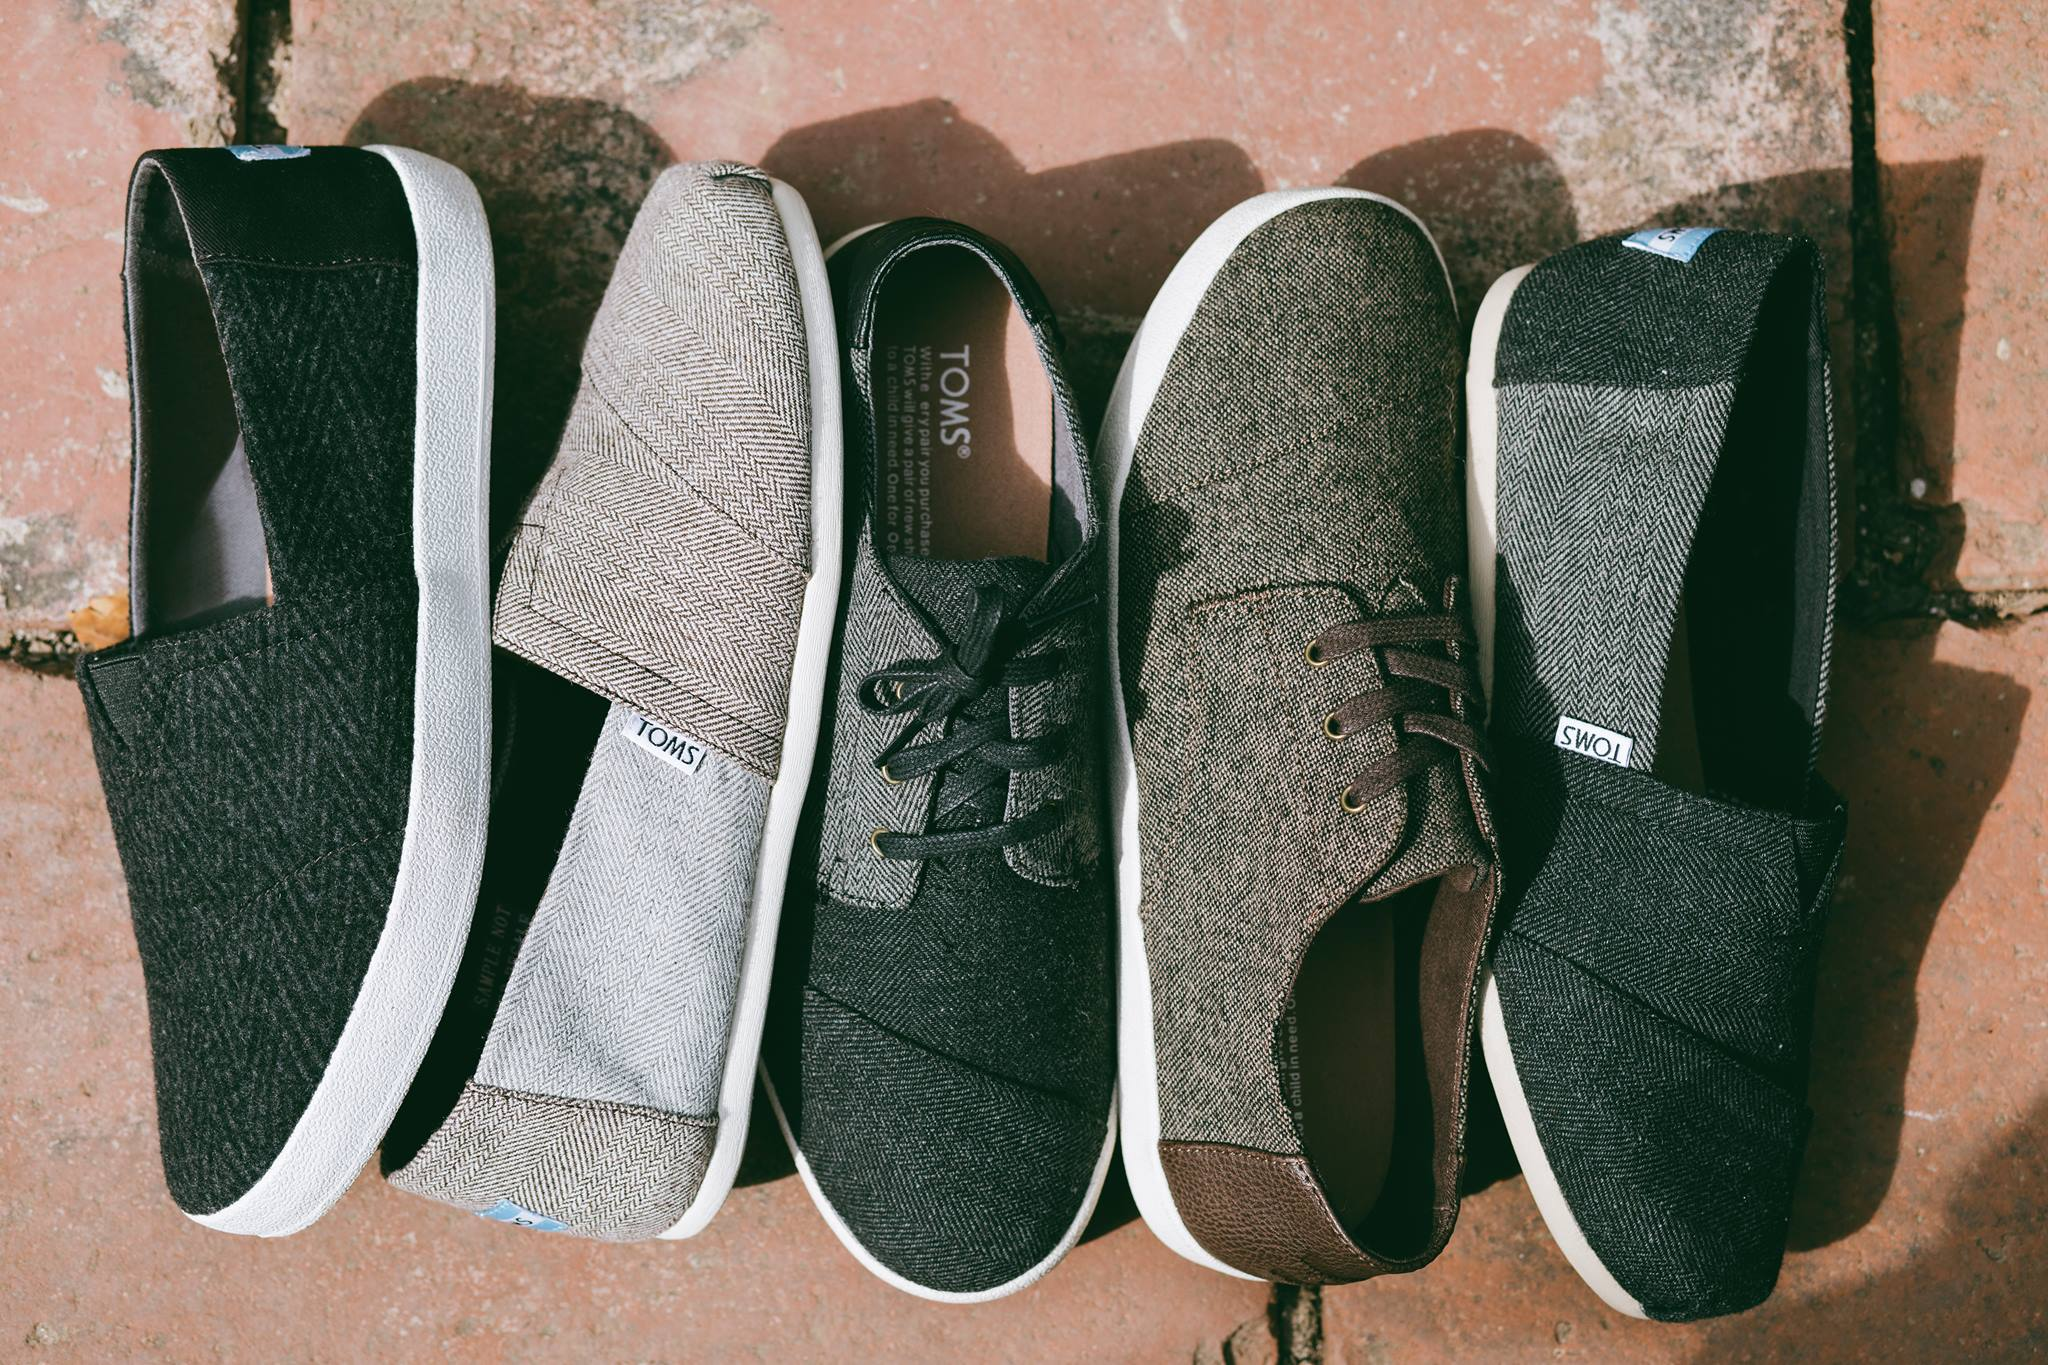 TOMS Shoes Tries Out Brick-And-Mortar